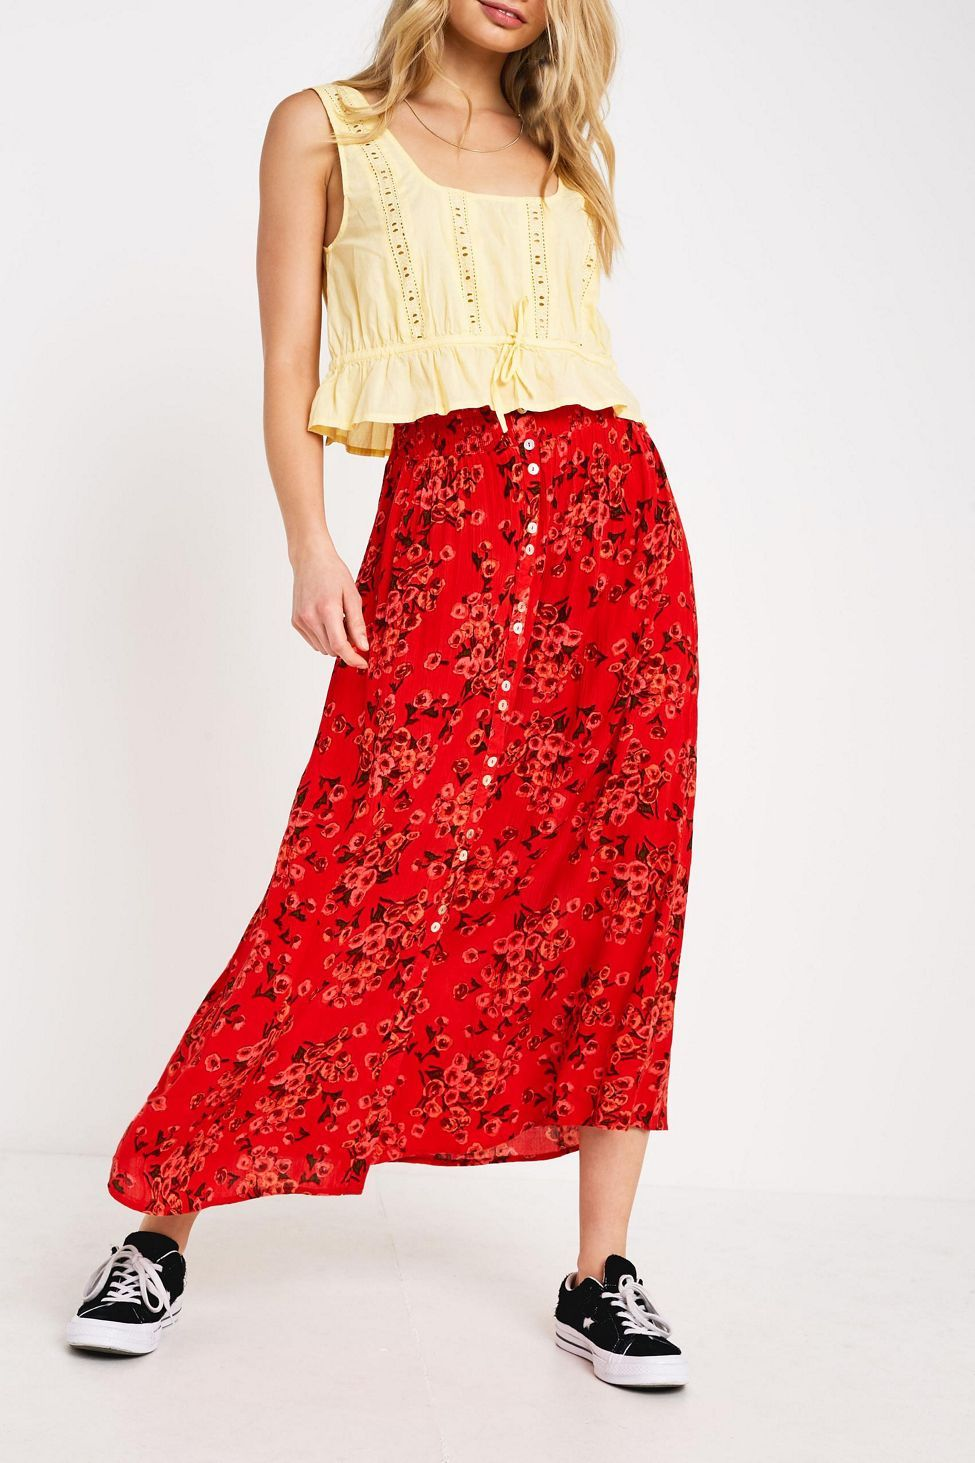 ca5911fe1 Weather Wear, Dressed To Kill, Midi Skirt, Urban Outfitters, Spring Fashion,